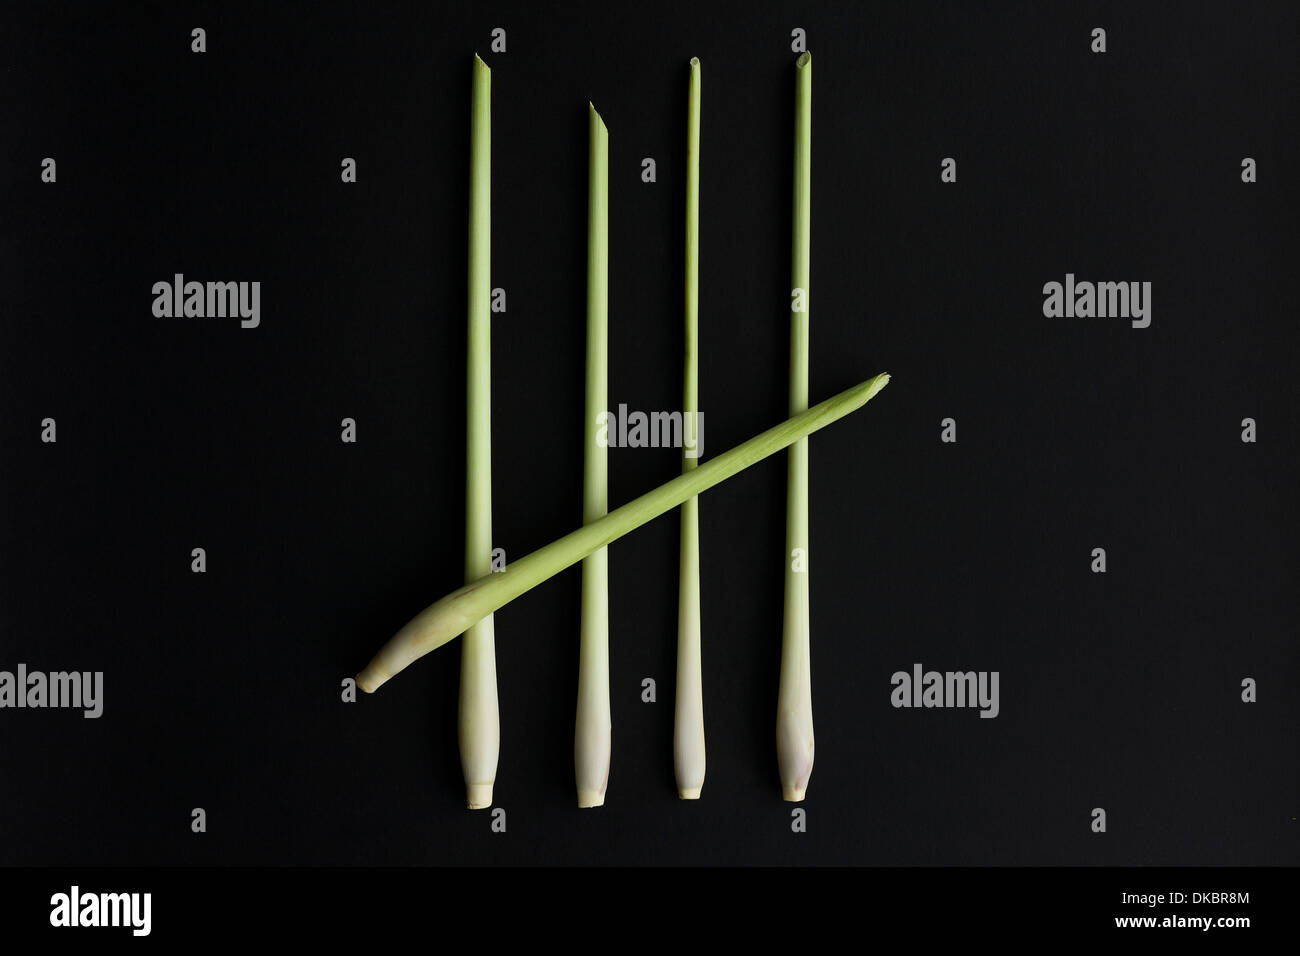 A five bar gate, No. 5, Number 5, 5 pieces of lemongrass on a black background. - Stock Image